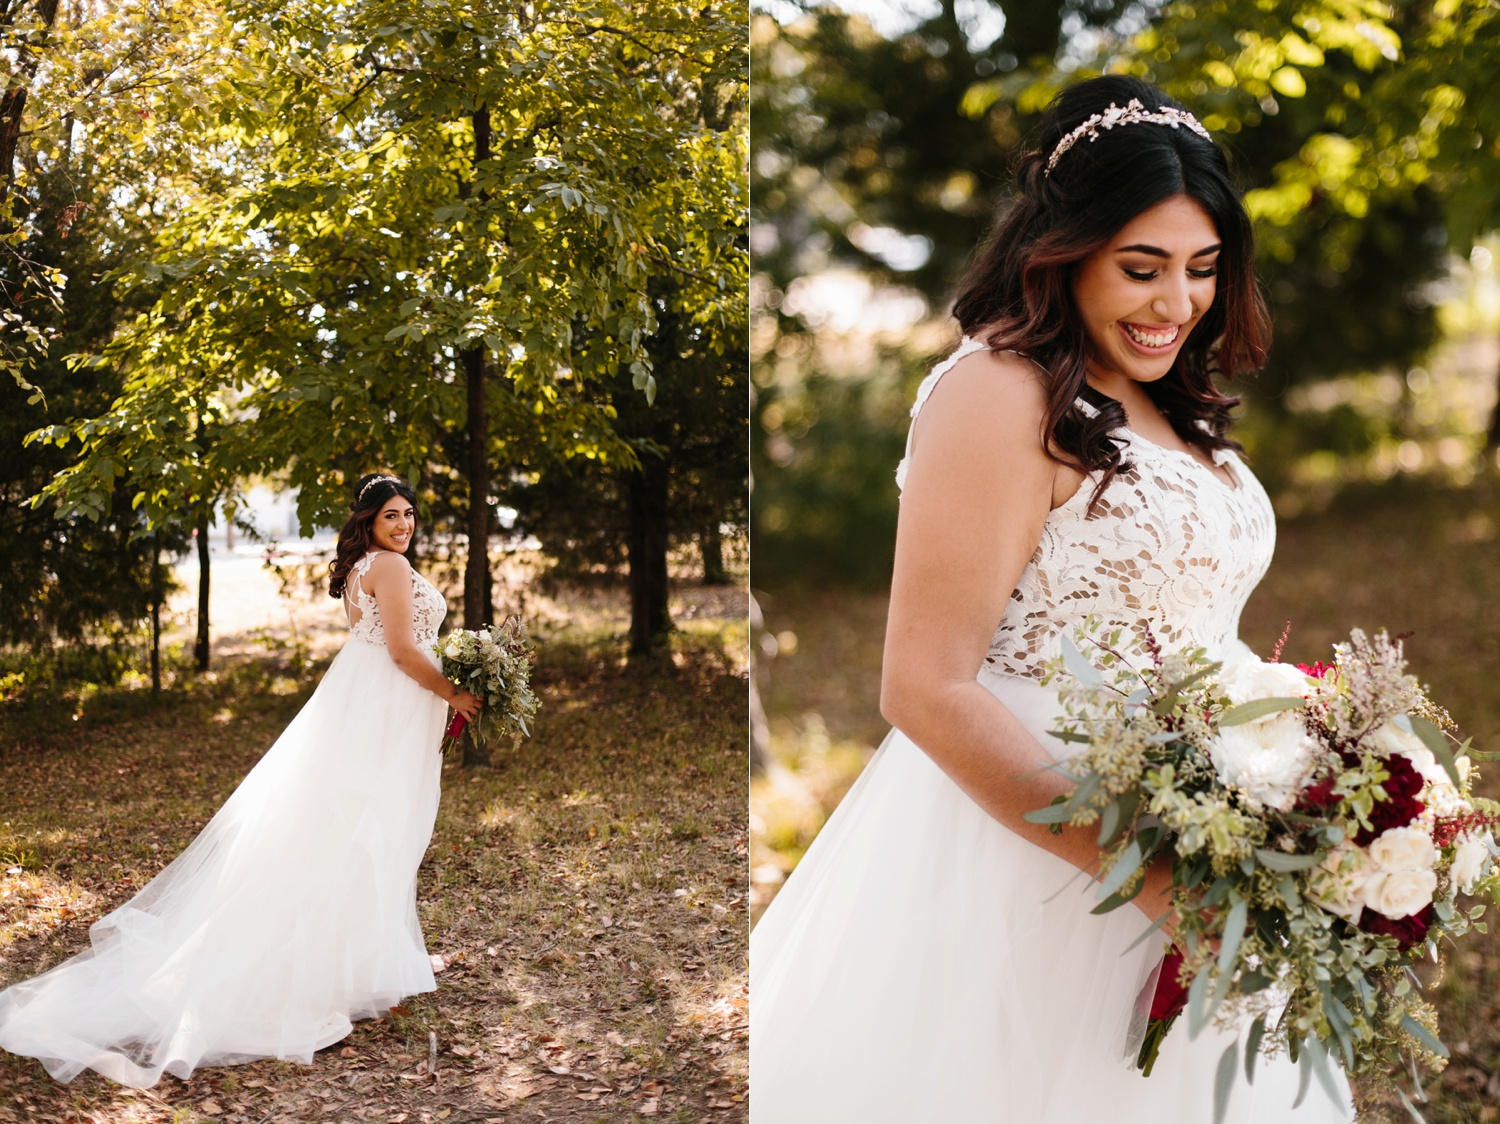 Grant + Lysette | a vibrant, deep burgundy and navy, and mixed metals wedding at Hidden Pines Chapel by North Texas Wedding Photographer Rachel Meagan Photography 044